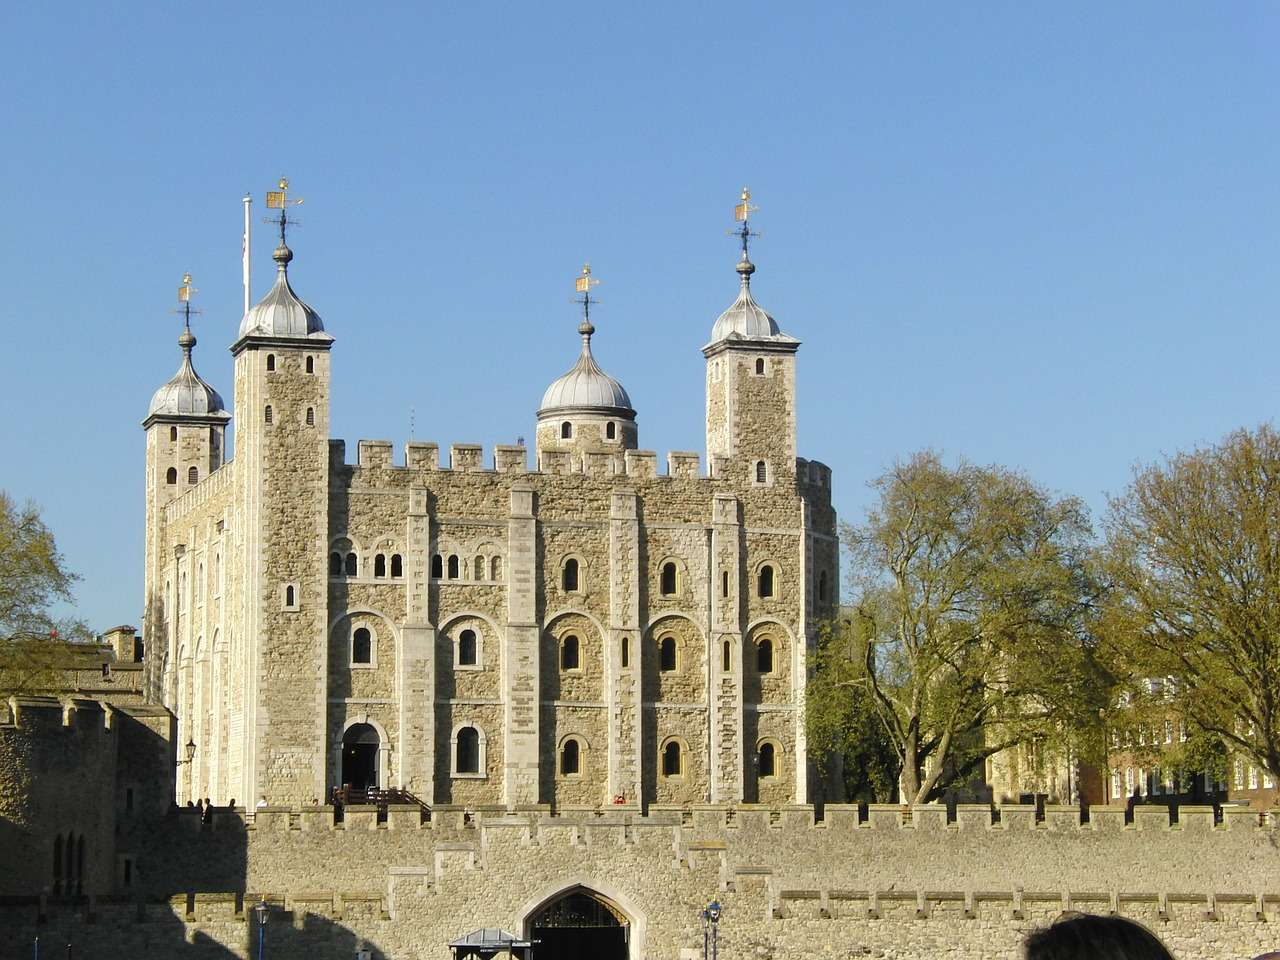 Tower of London - Top things to do in London